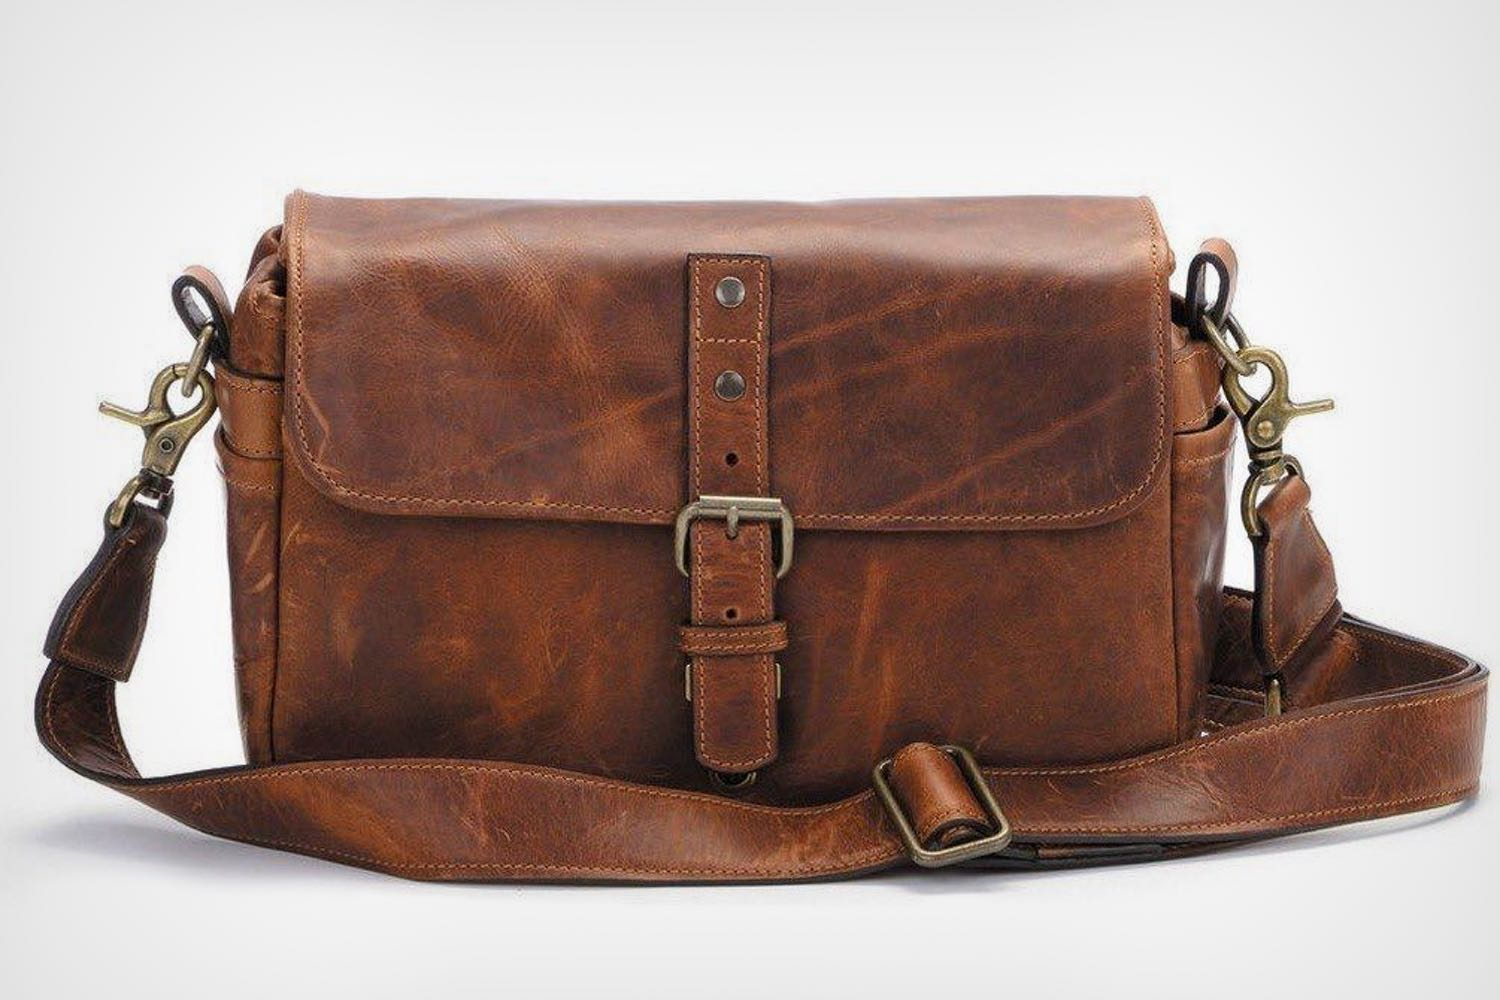 The Ona Bowery camera bag.